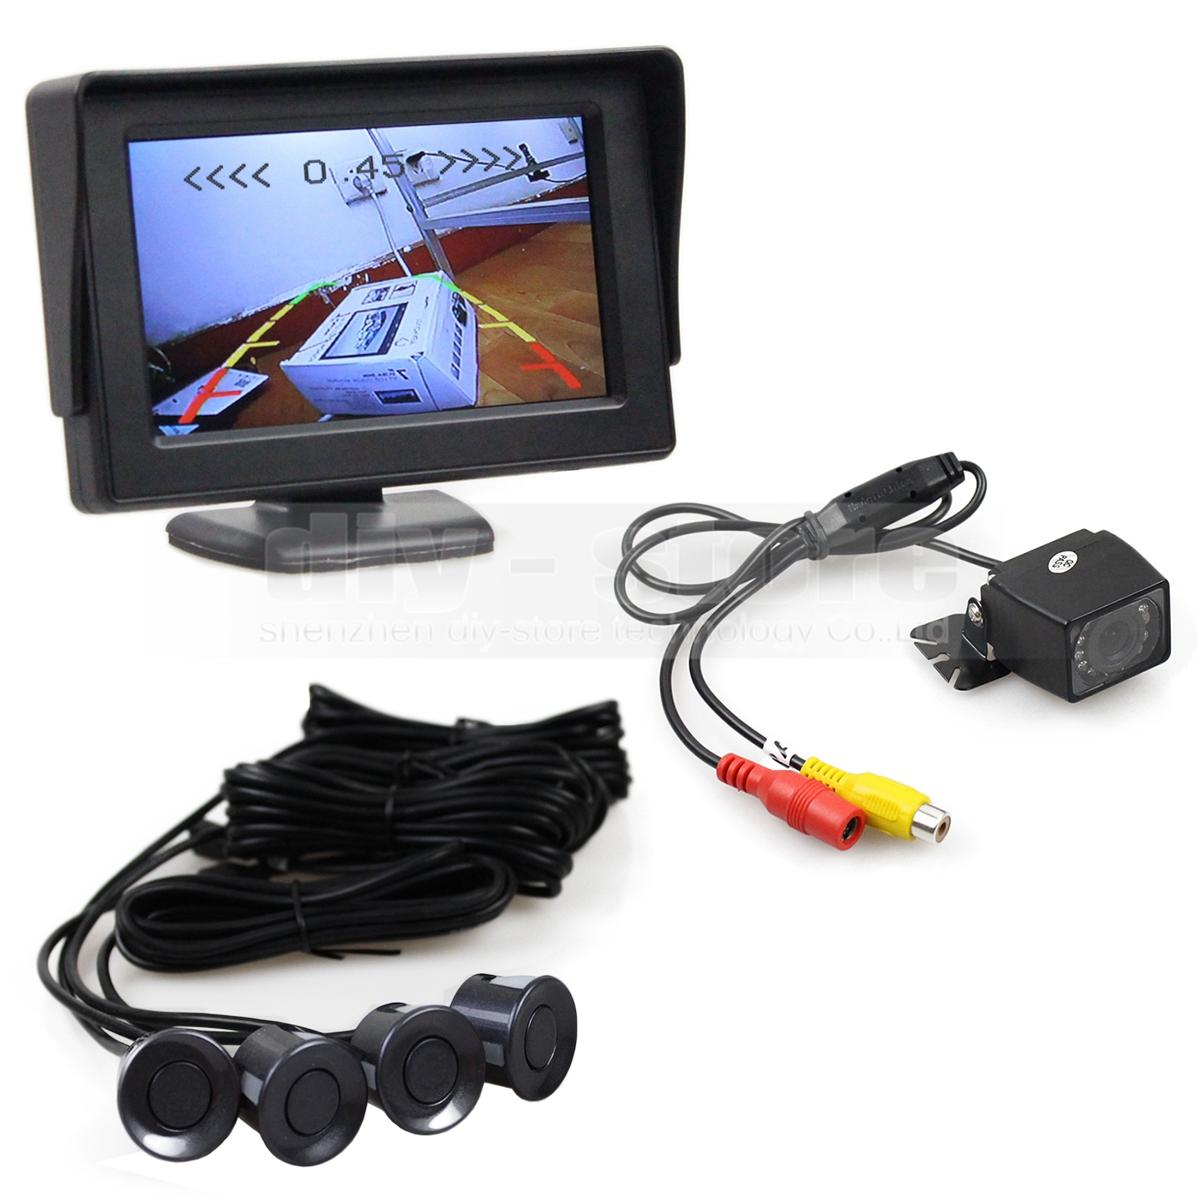 Video Parking Radar 4.3 Inch Rear View Car Monitor Kit + Parking Radar + IR Night Vision Car Camera Parking Assistance